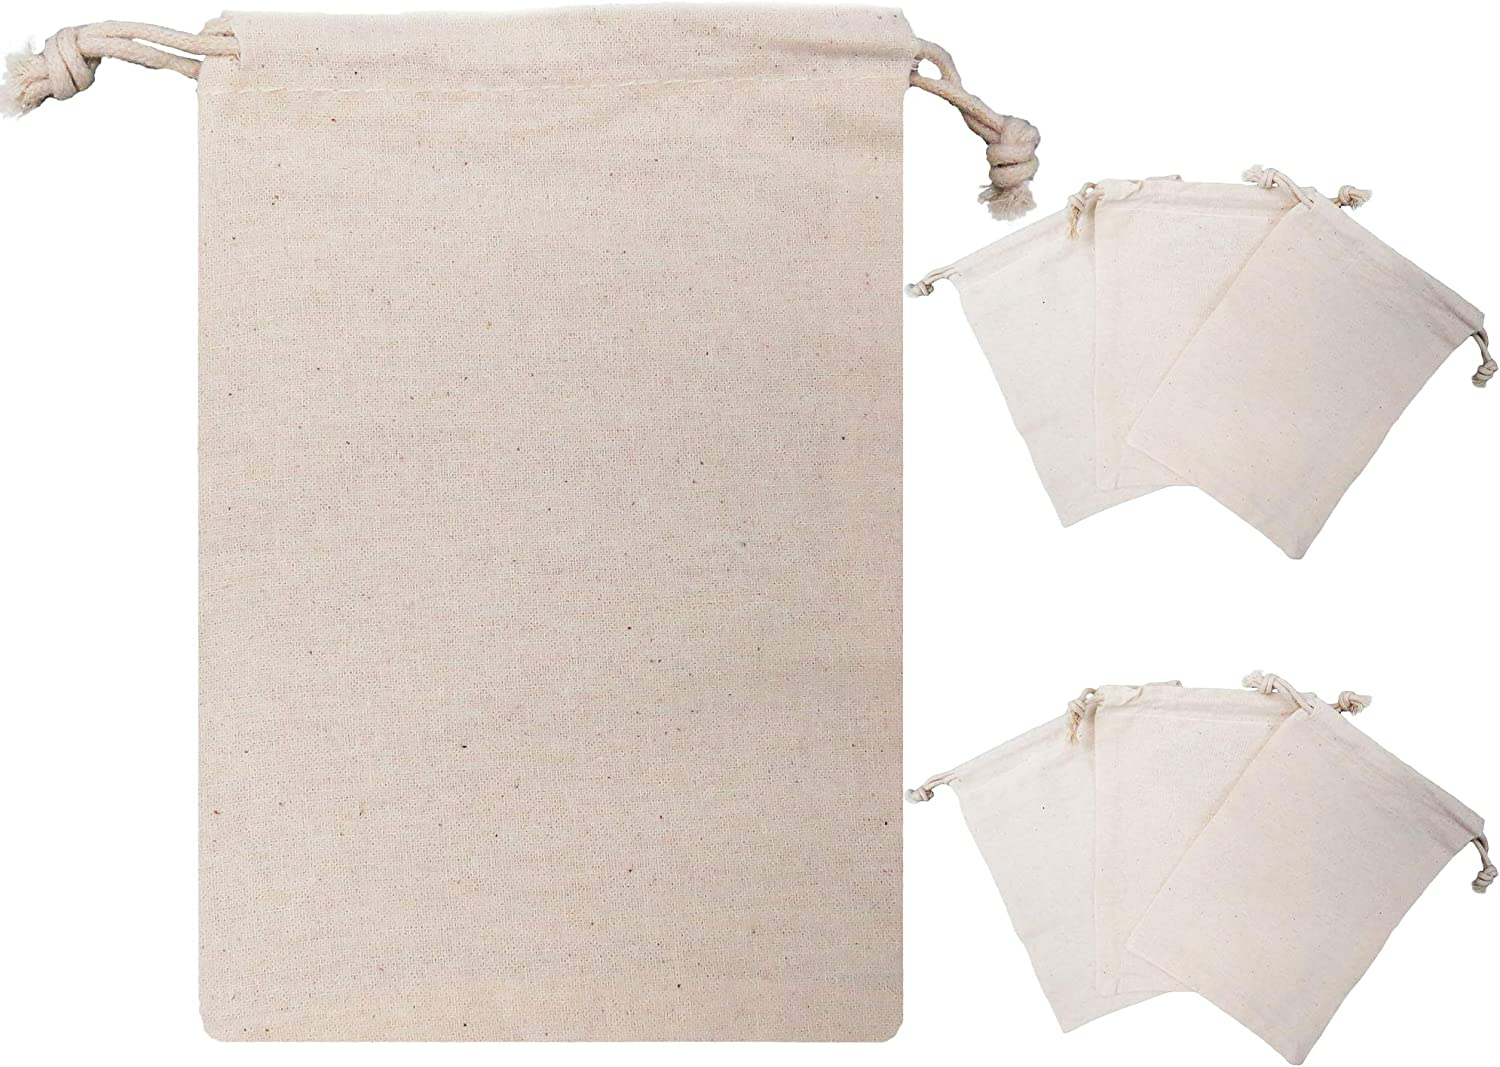 Calary 50pcs Double Canvas Drawstring Gift Bag Cotton Pouch Gift Sachet Bags Muslin Bag Reusable Tea Bag 5x7 Inch